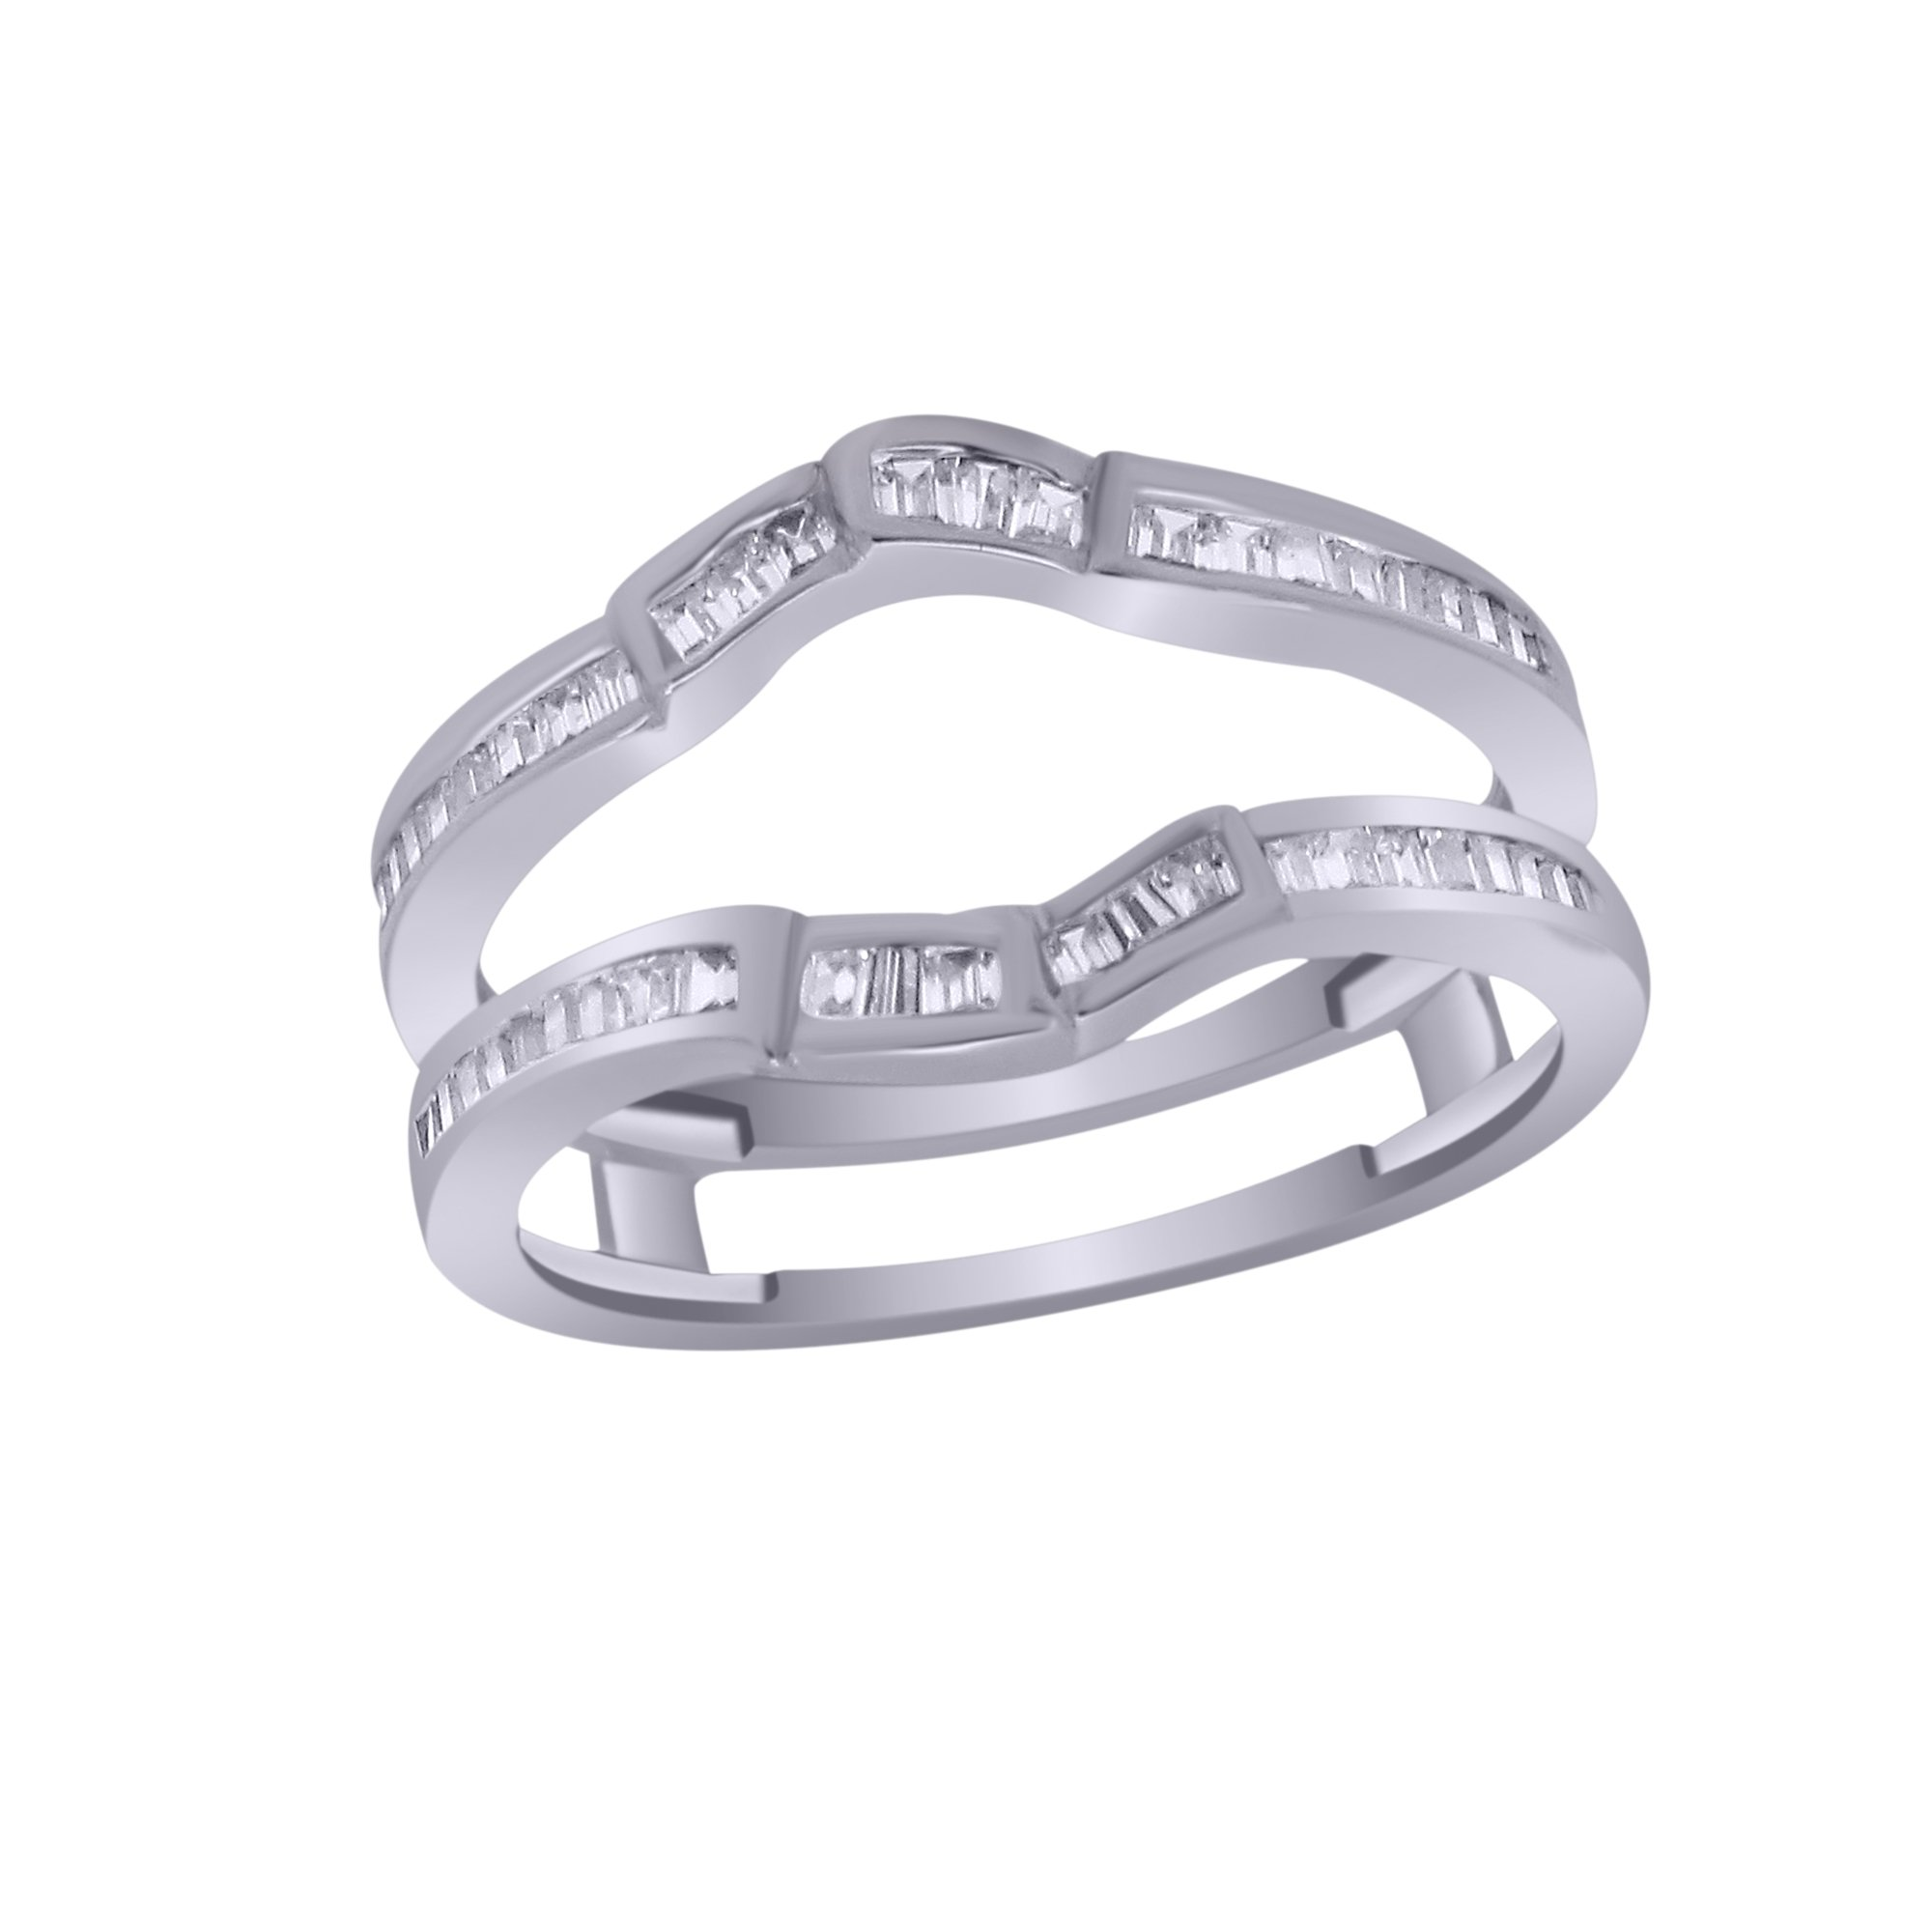 OMEGA JEWELLERY 0.40 Ct Baguette Shape Real Diamond 14K White Gold Anniversary Wedding Enhancer Wrap Guard Ring (7.5) by OMEGA JEWELLERY